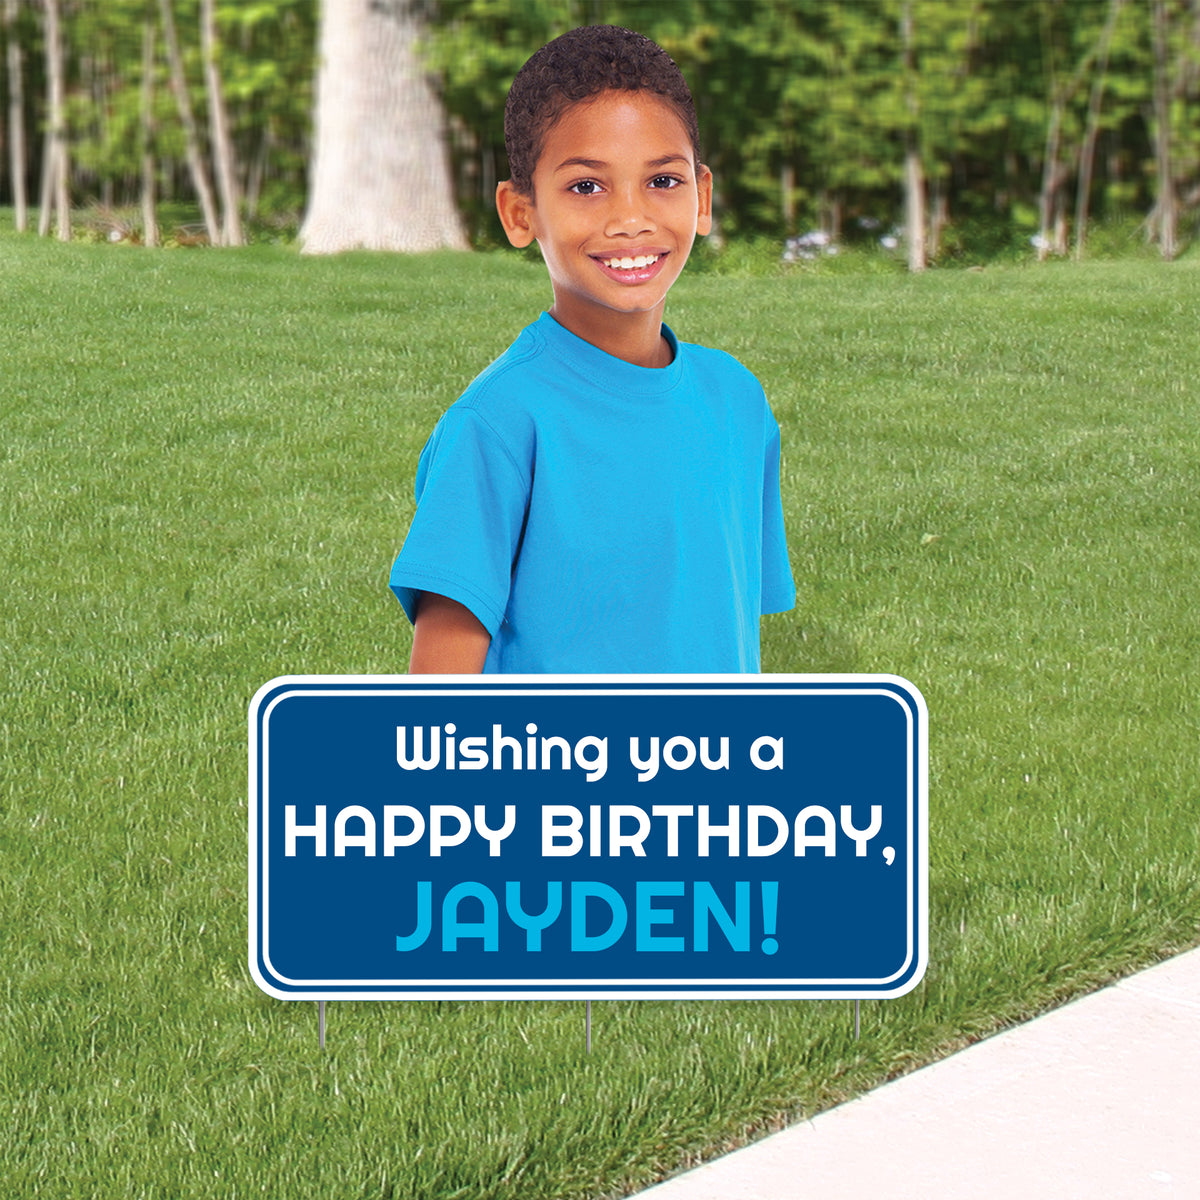 24 in. to 36 in. Boy Birthday Upper Body Cutout Yard Sign with Custom Sign